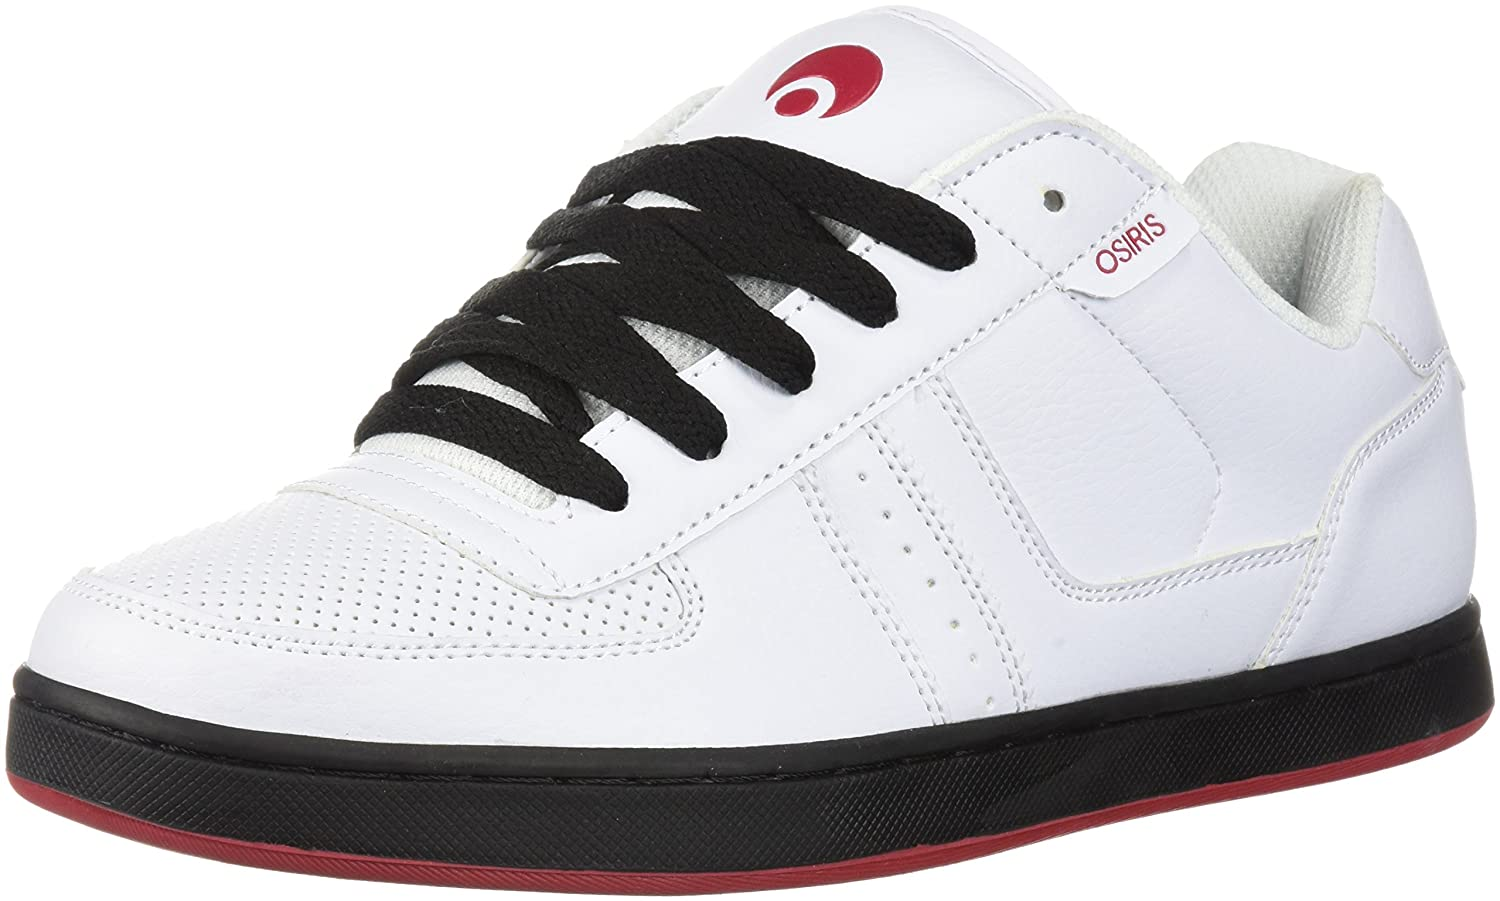 Osiris Men's Relic Skateboarding Shoe 6 D(M) US|White/Red/Black